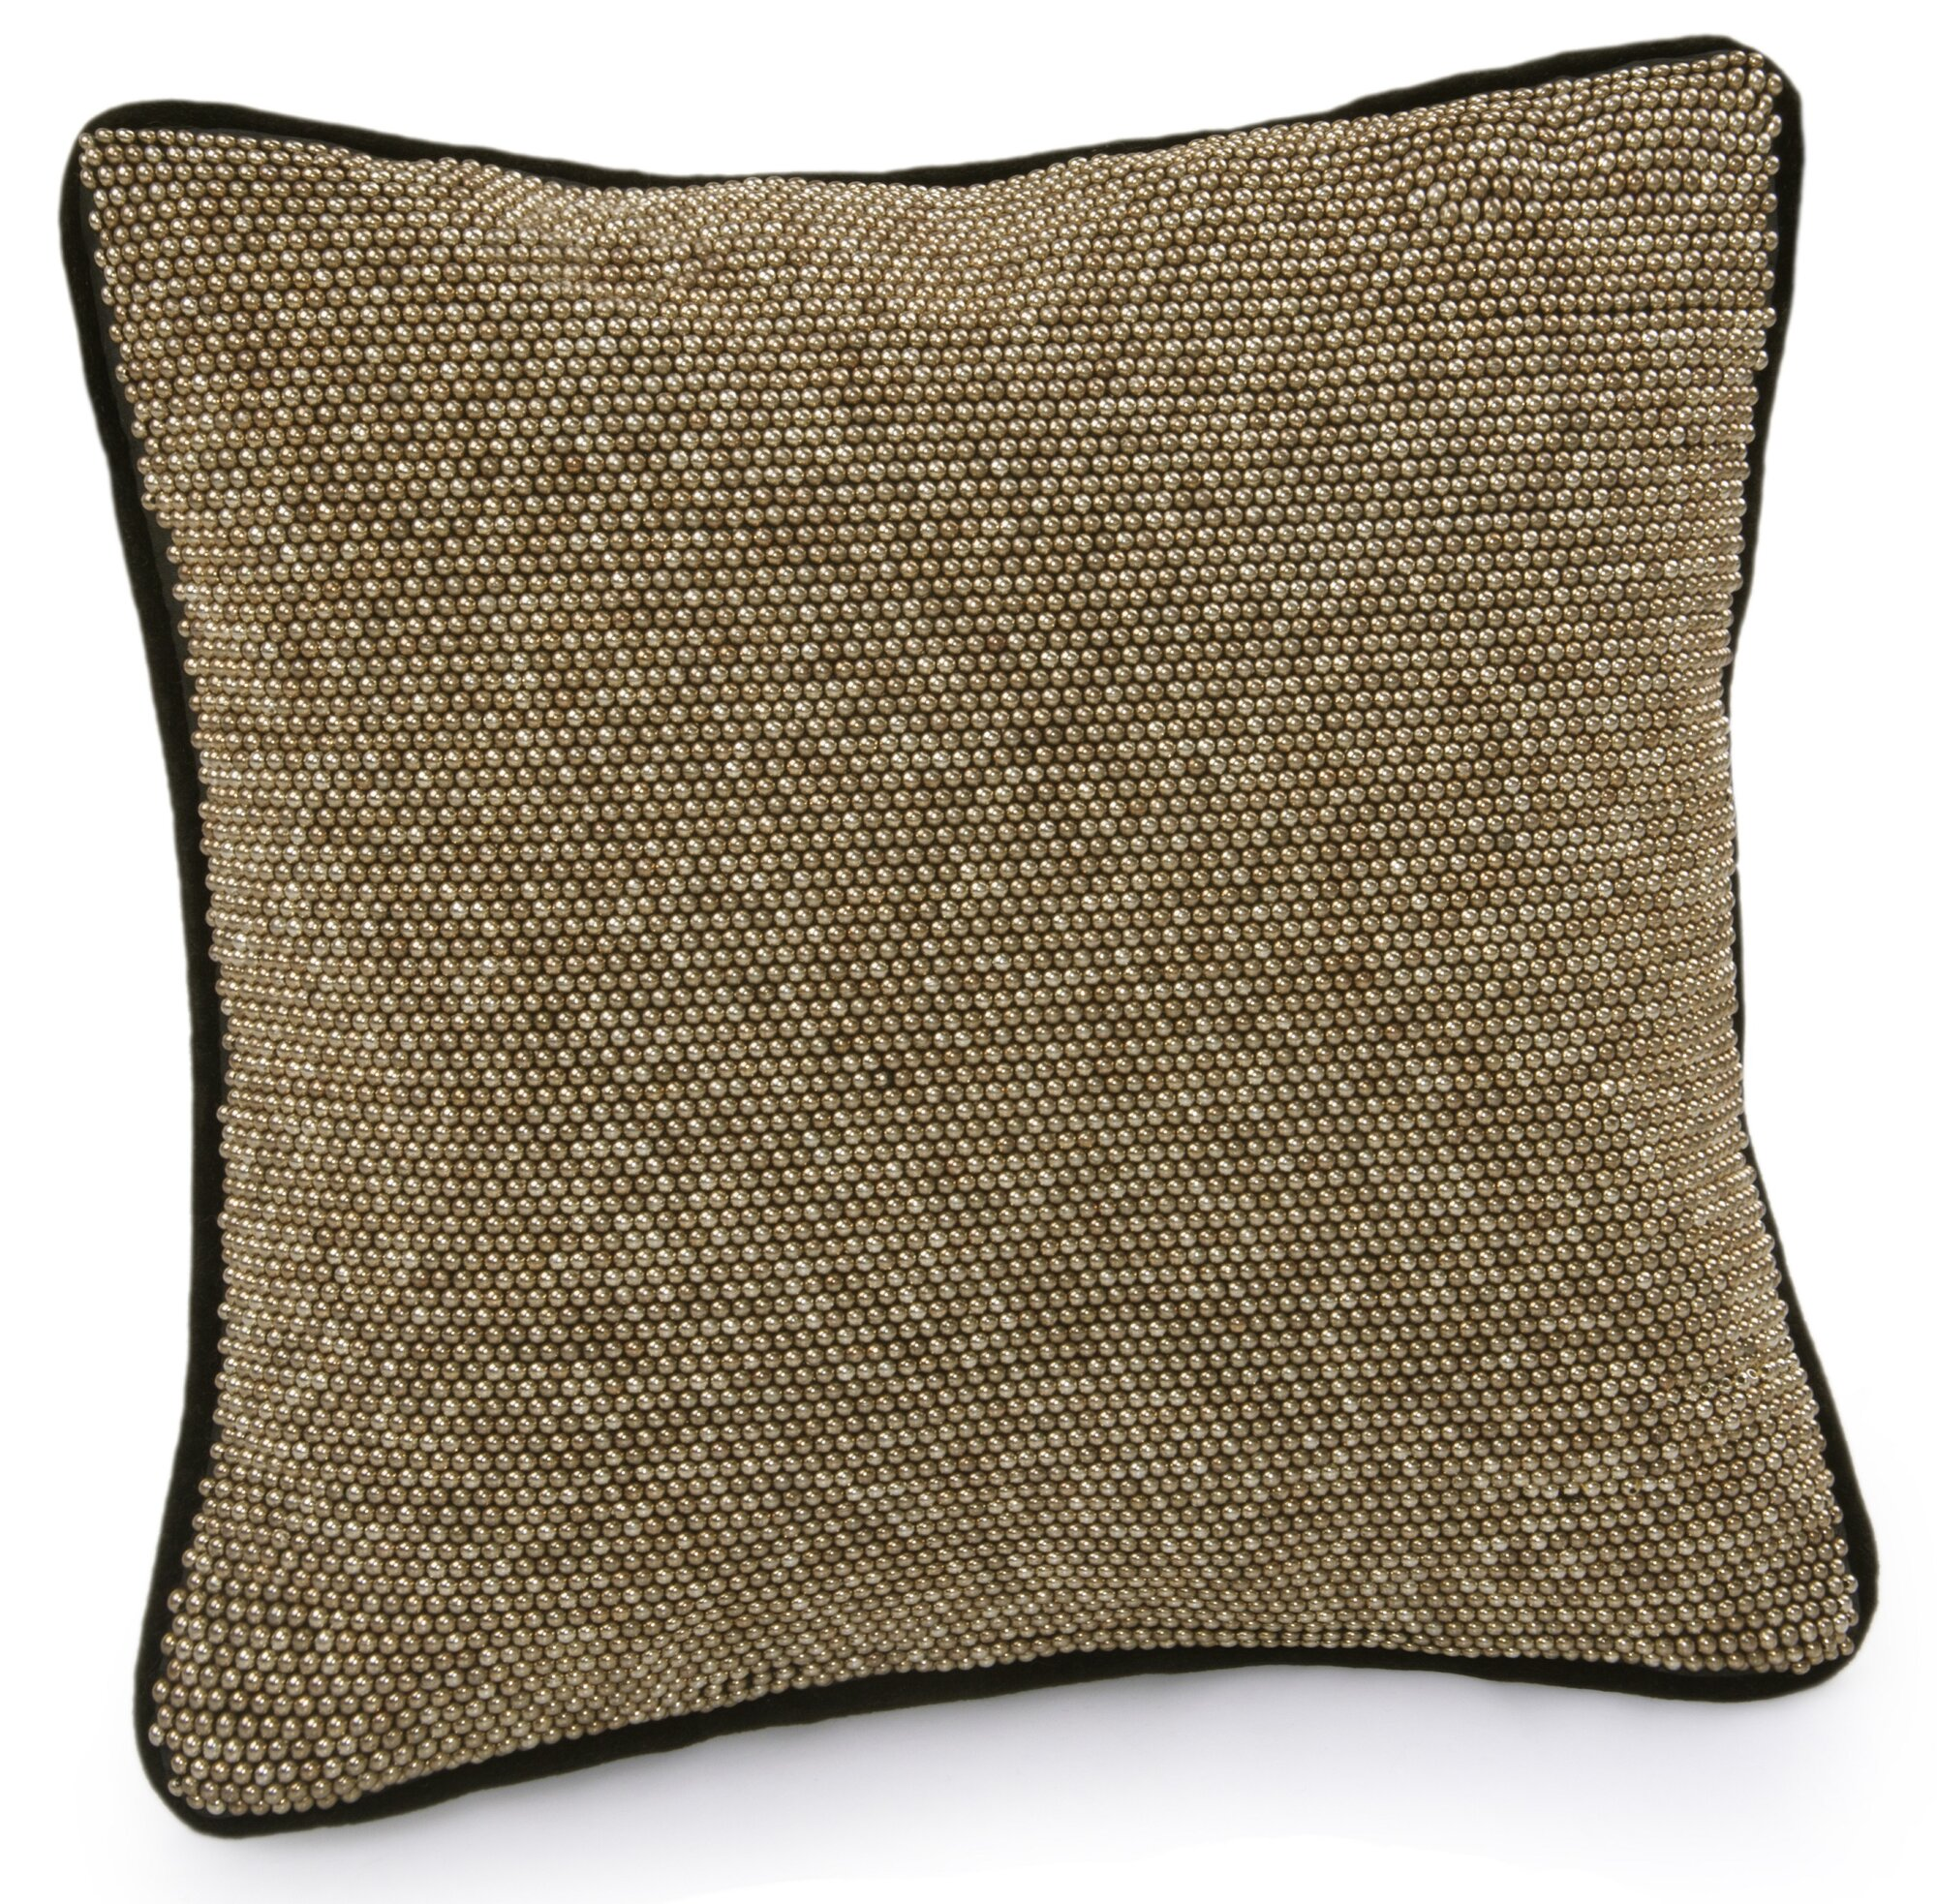 Black Beaded Throw Pillow : Jovi Home Diva Hand-Beaded Throw Pillow eBay